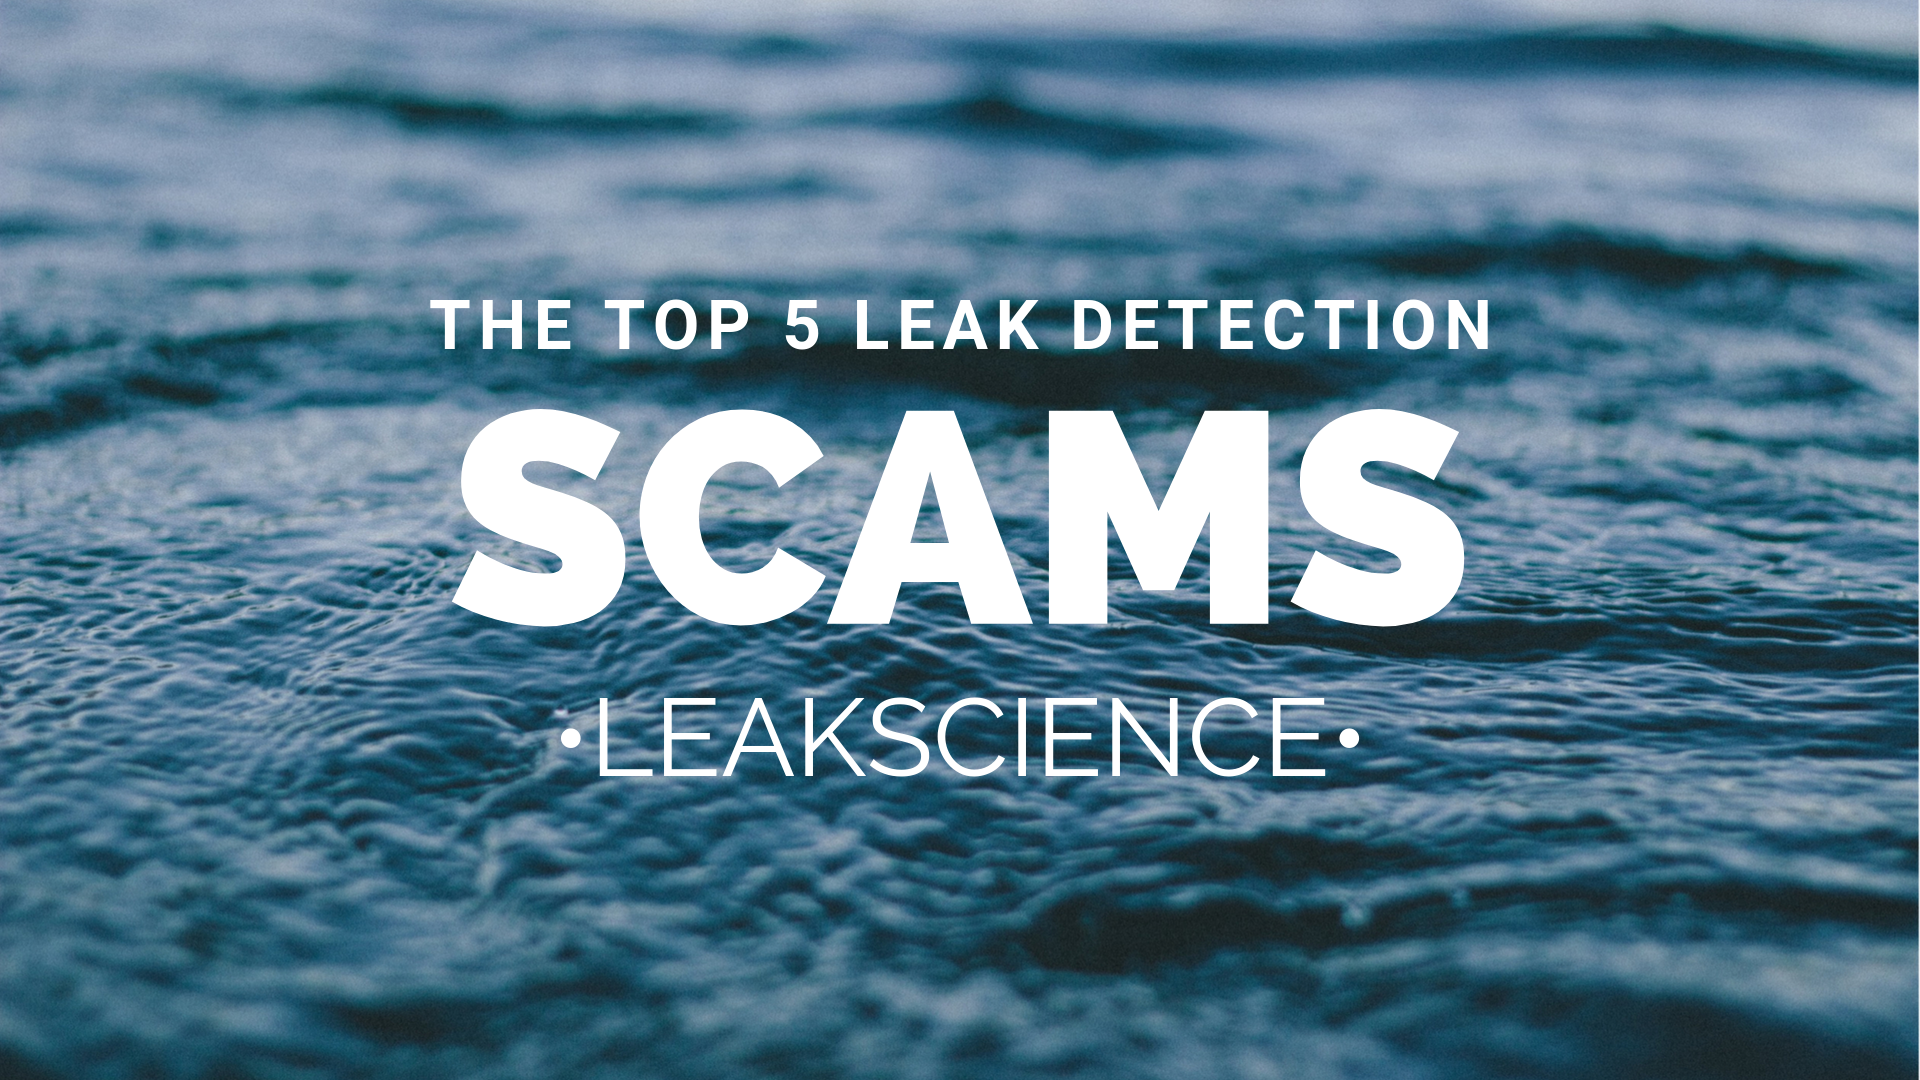 5 leak detection scams